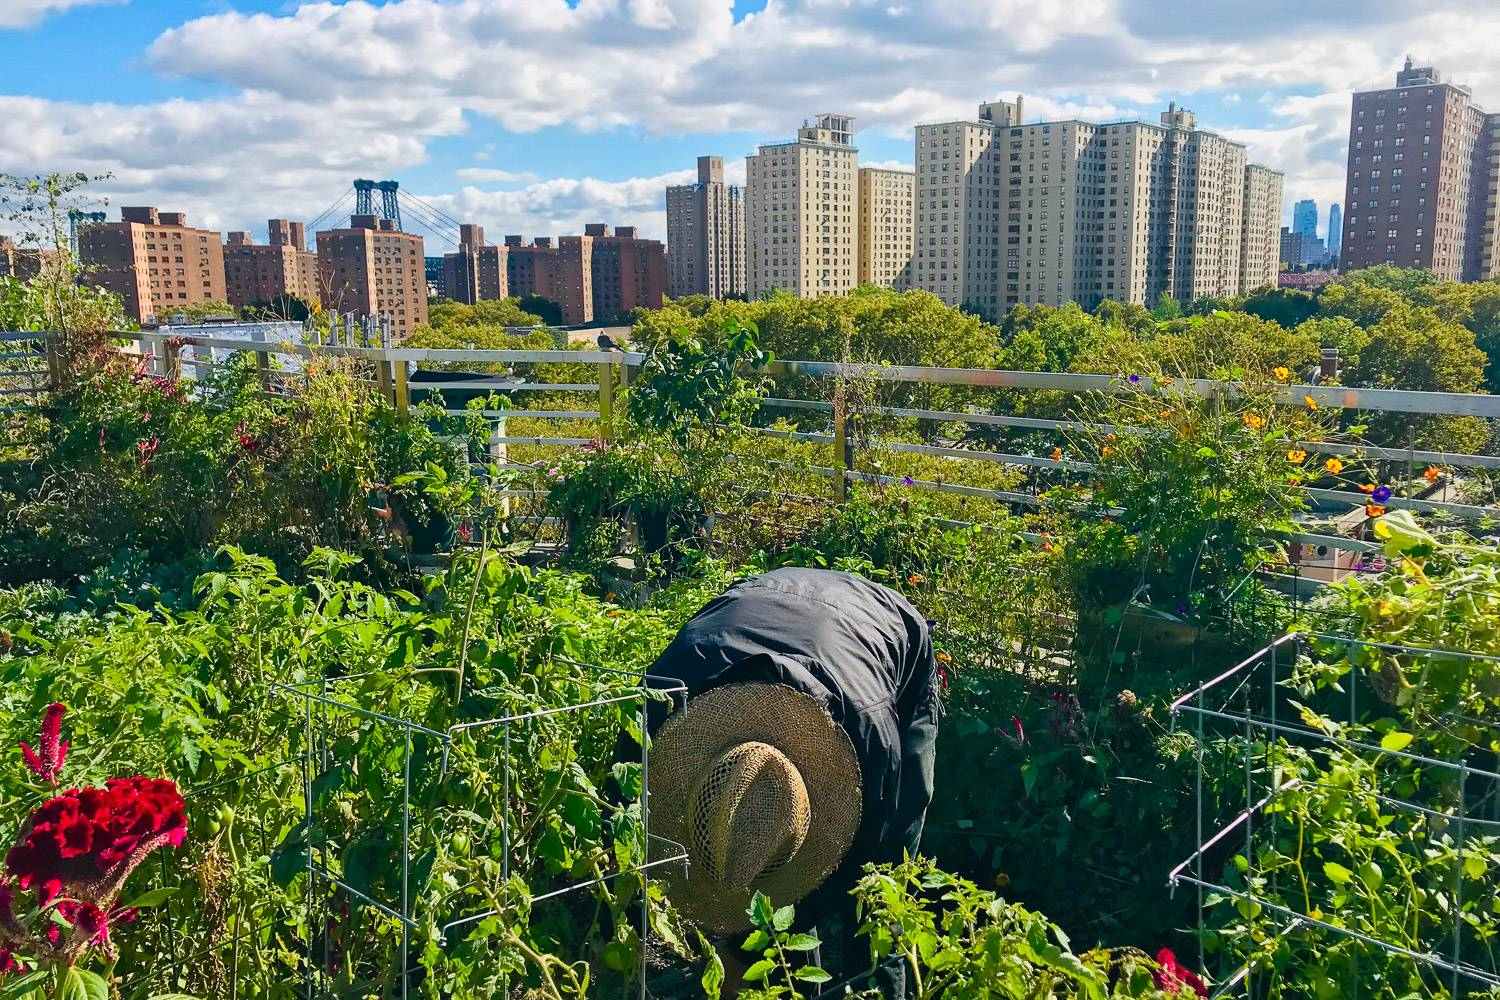 Image of a person wearing a straw hat bending over to tend to vegetables planted in a roof garden with NYC buildings in the background